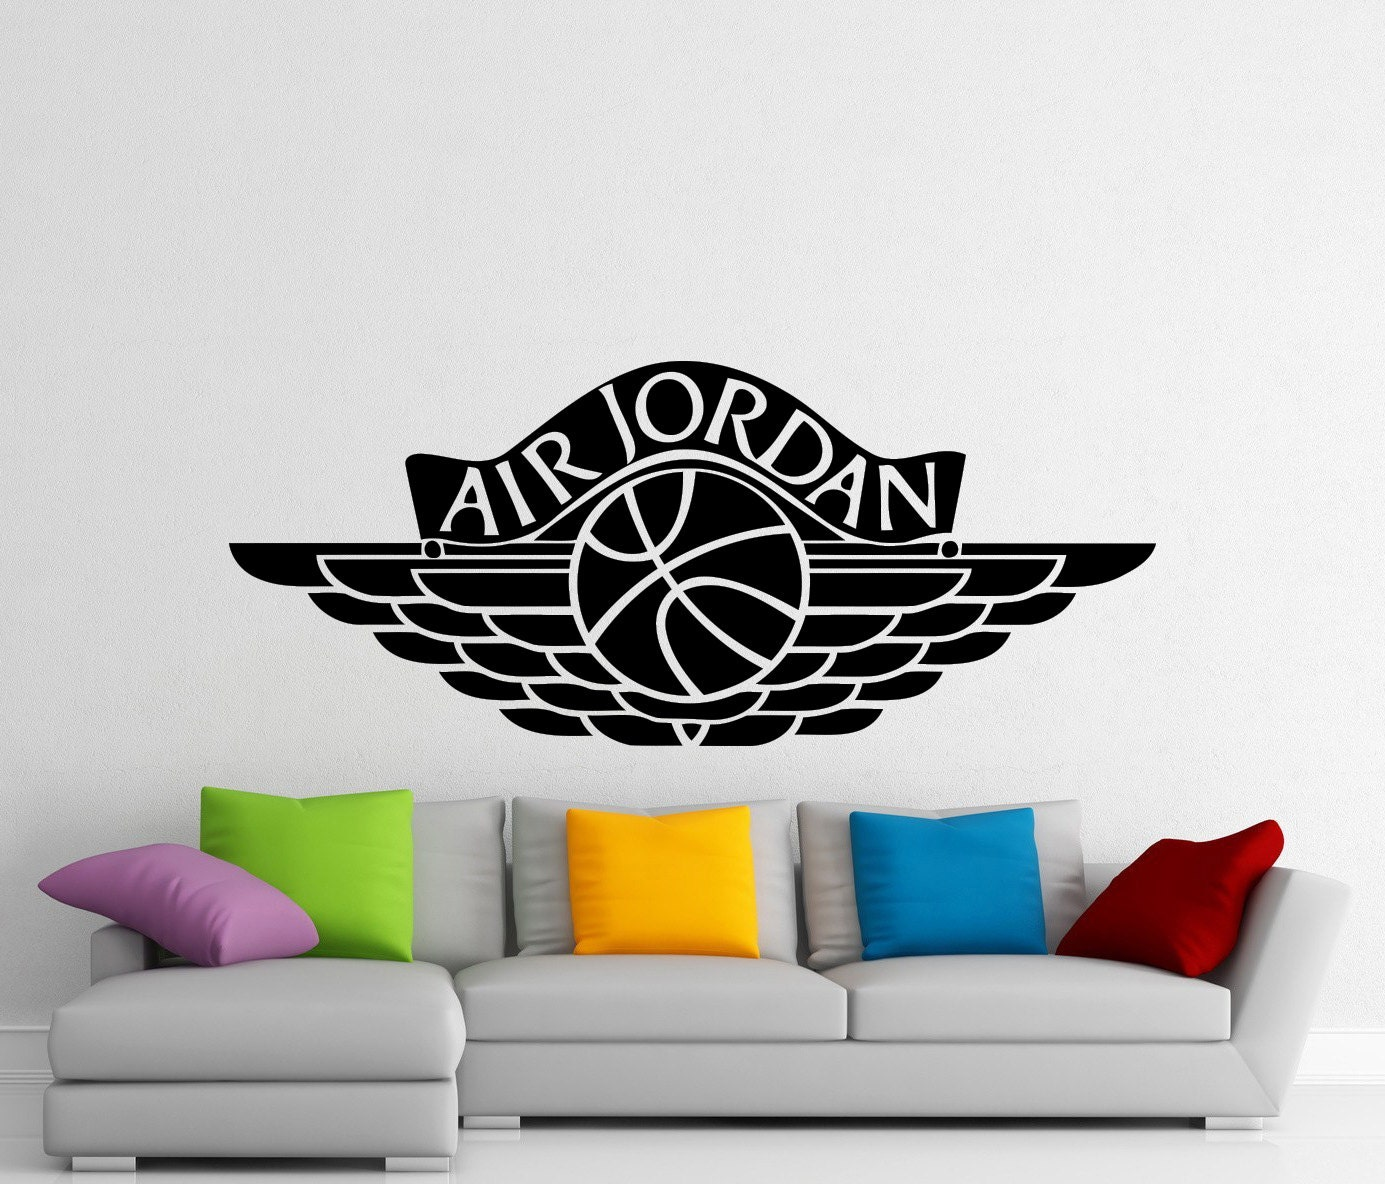 Air jordan wall sticker sports basketball logo vinyl decal etsy